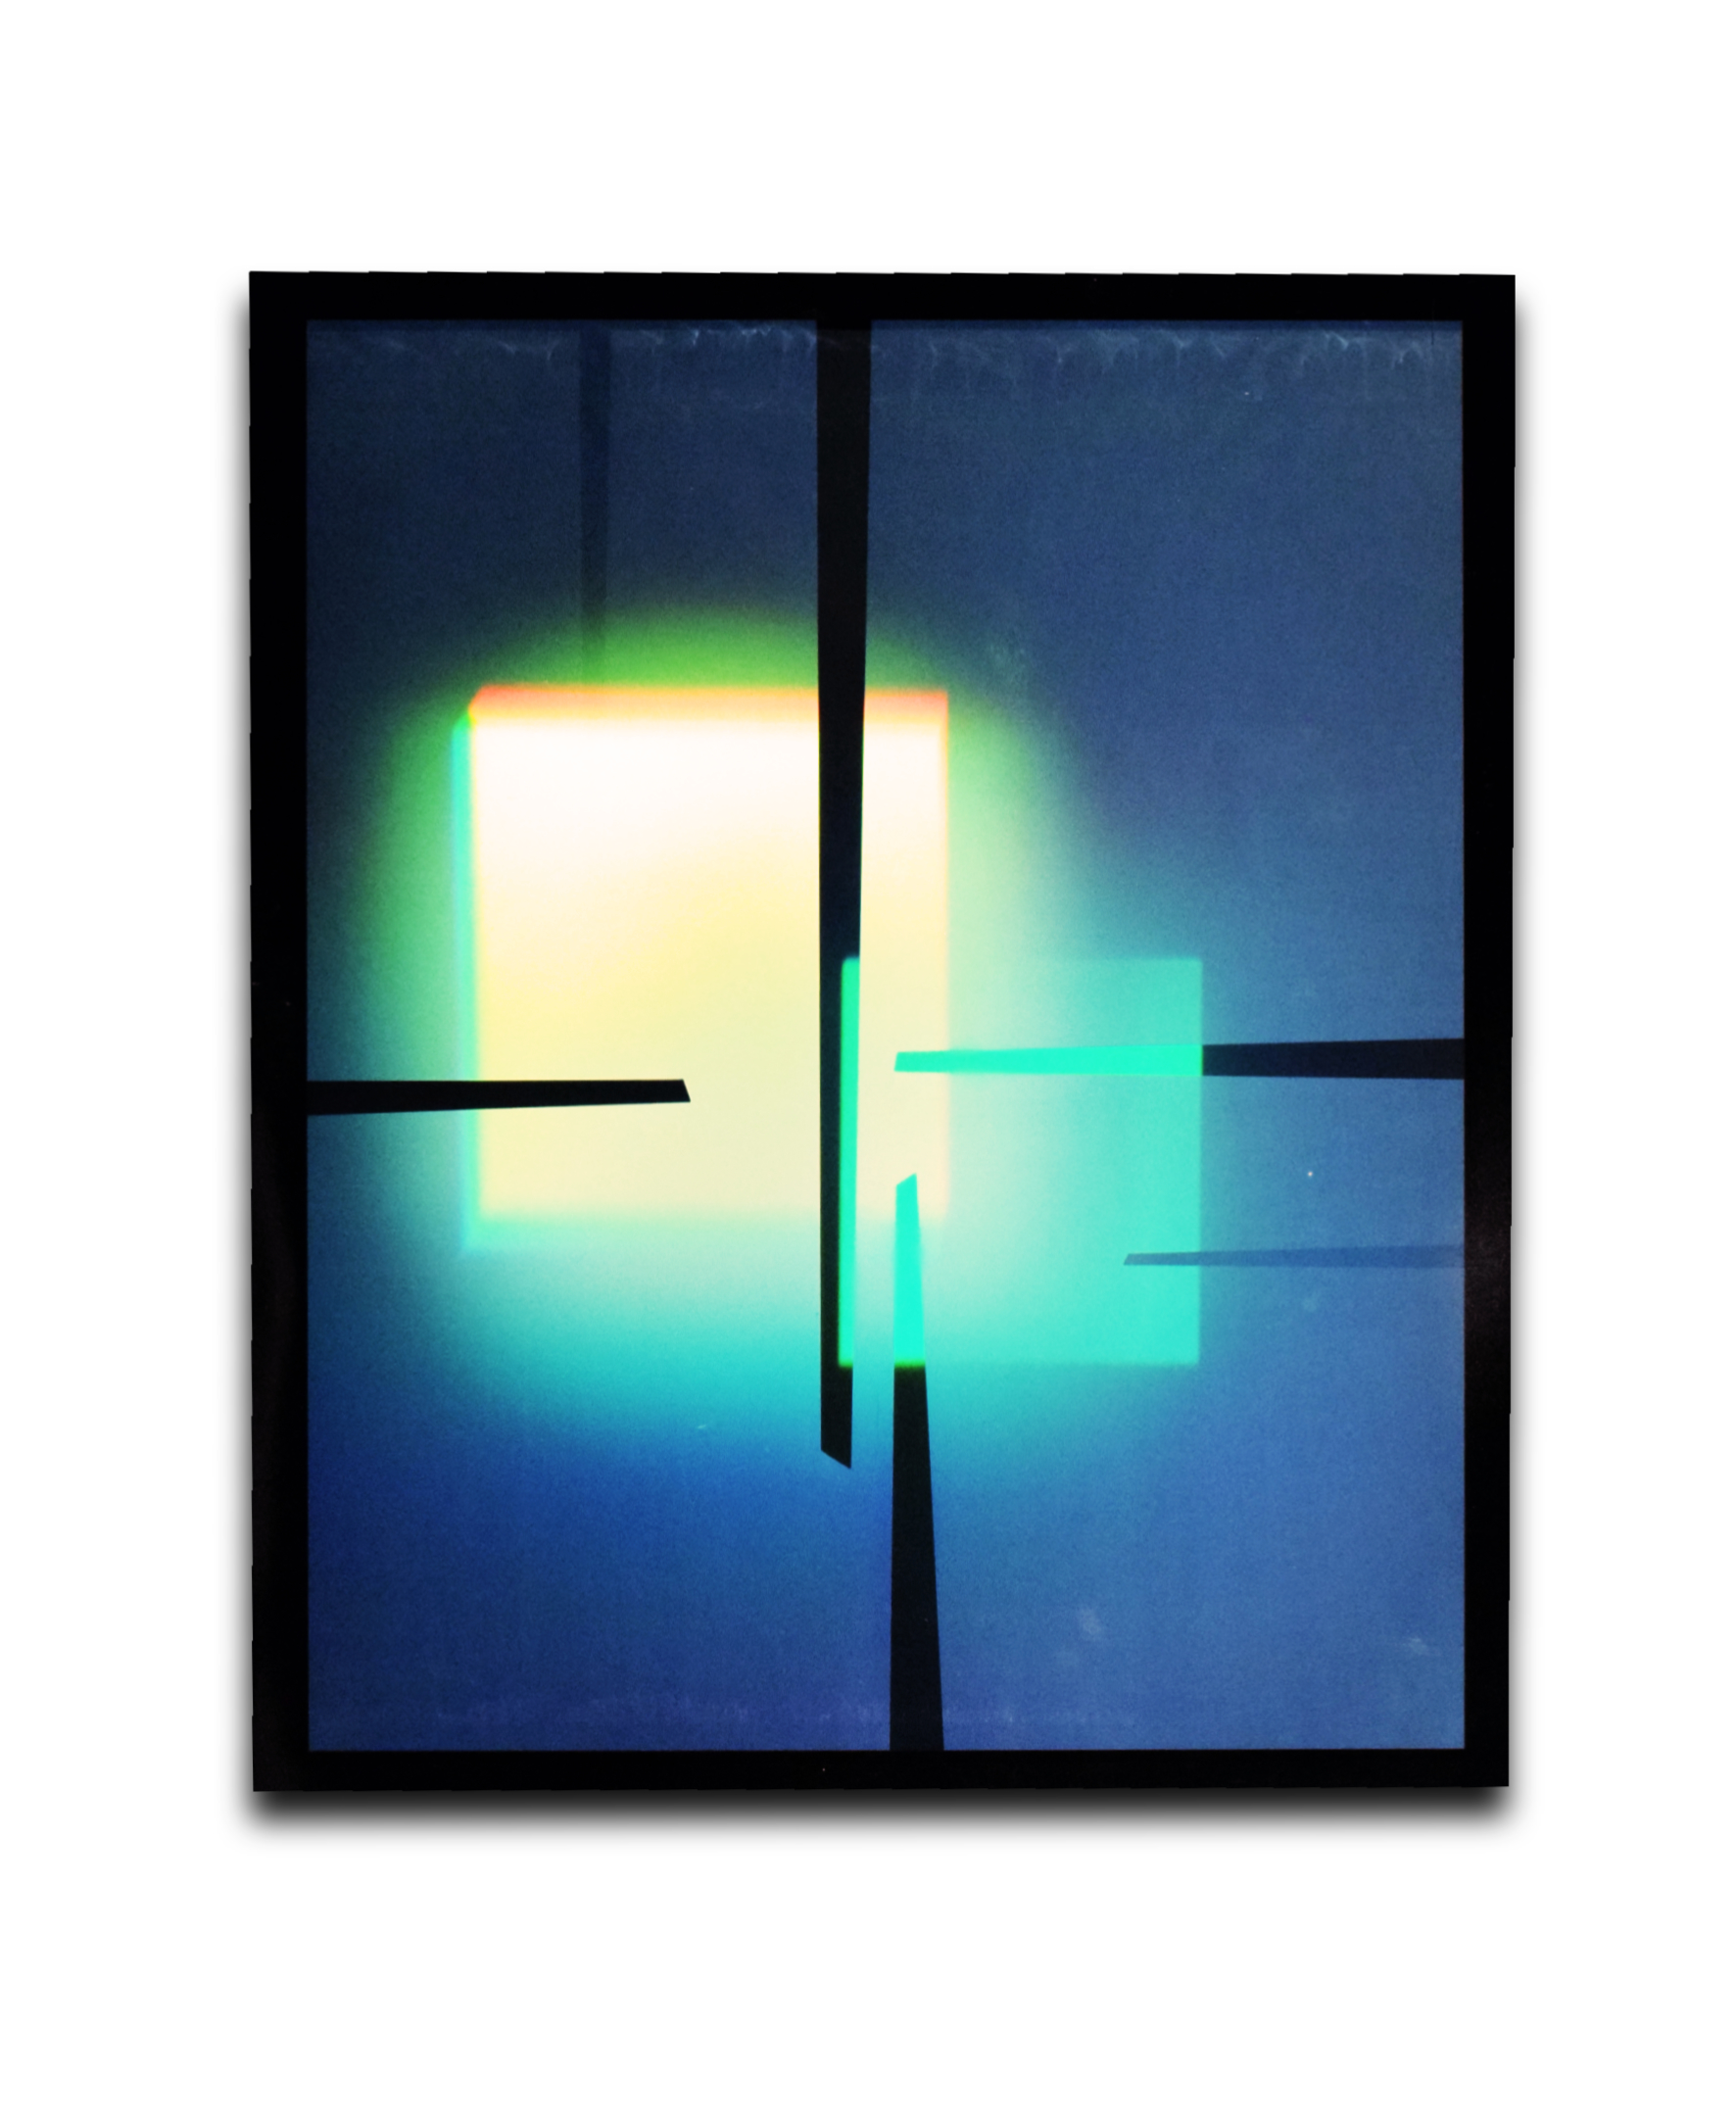 August Muth Bathing in Ether, art hologram of sbatract squres with photoluminescent pigment